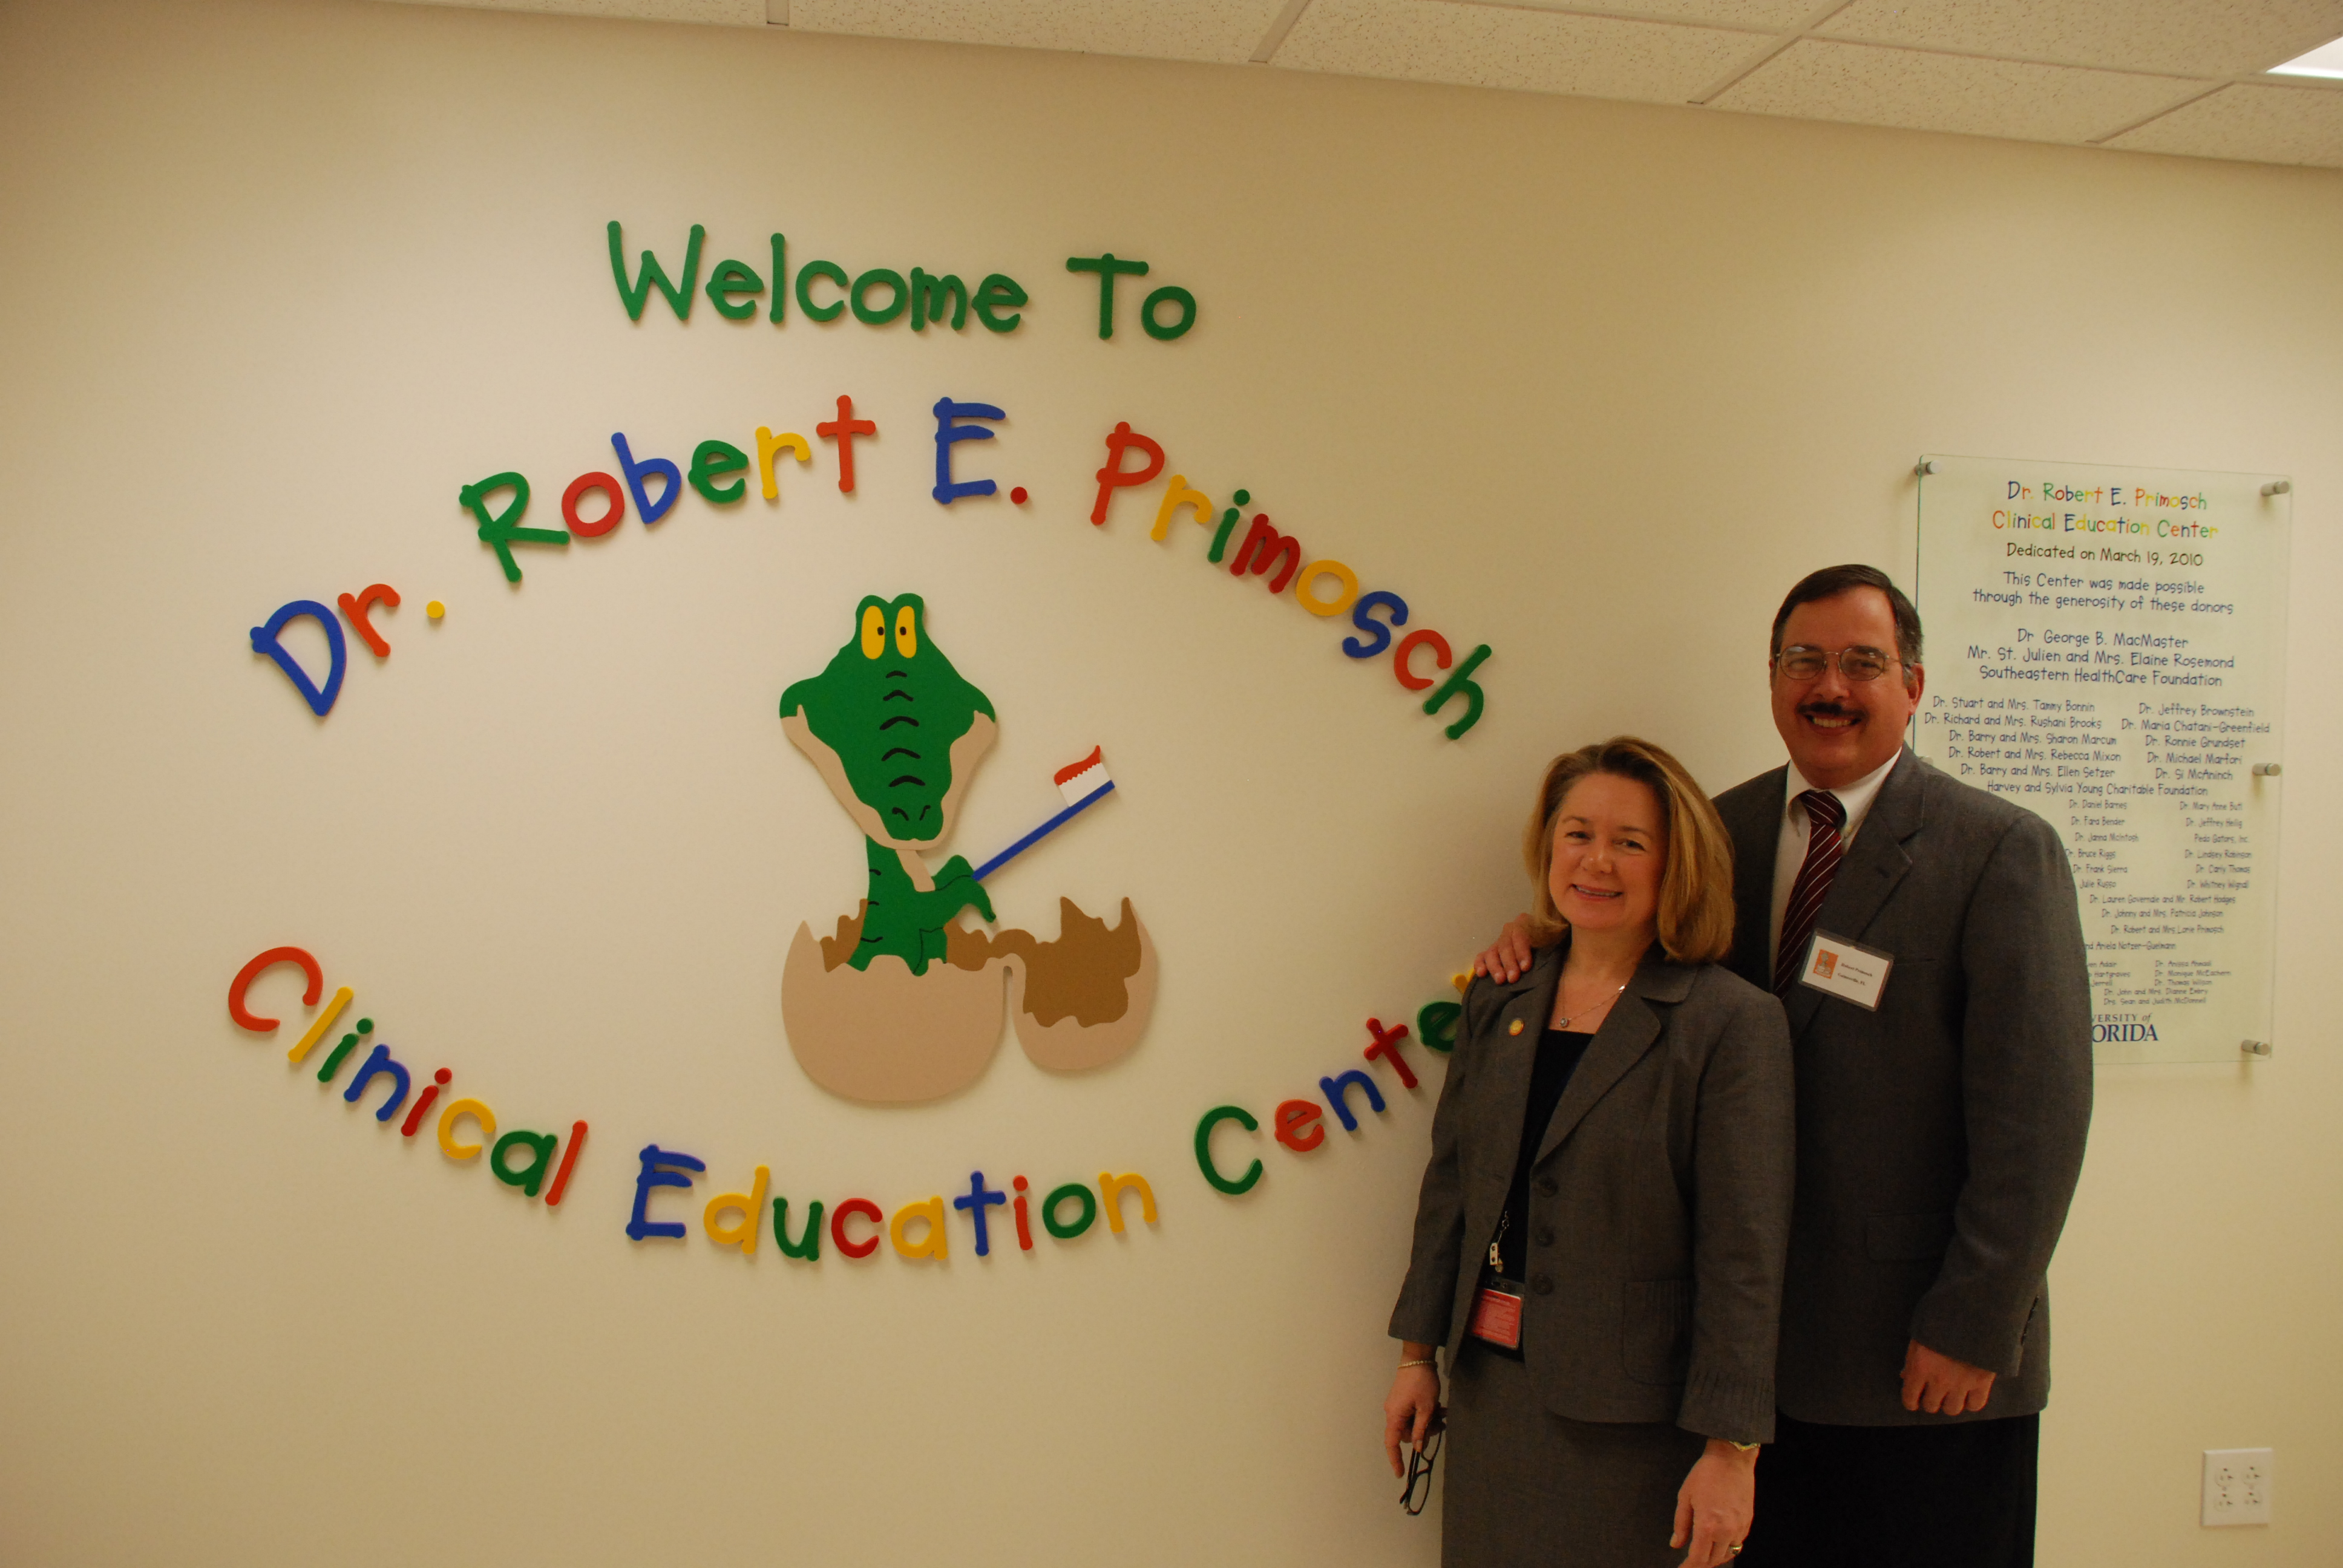 Dean Teresa A. Dolan and Dr. Robert E. Primosch, Pediatric Dental Professor and Associate Dean for Education; Photo courtesy of the University of Florida